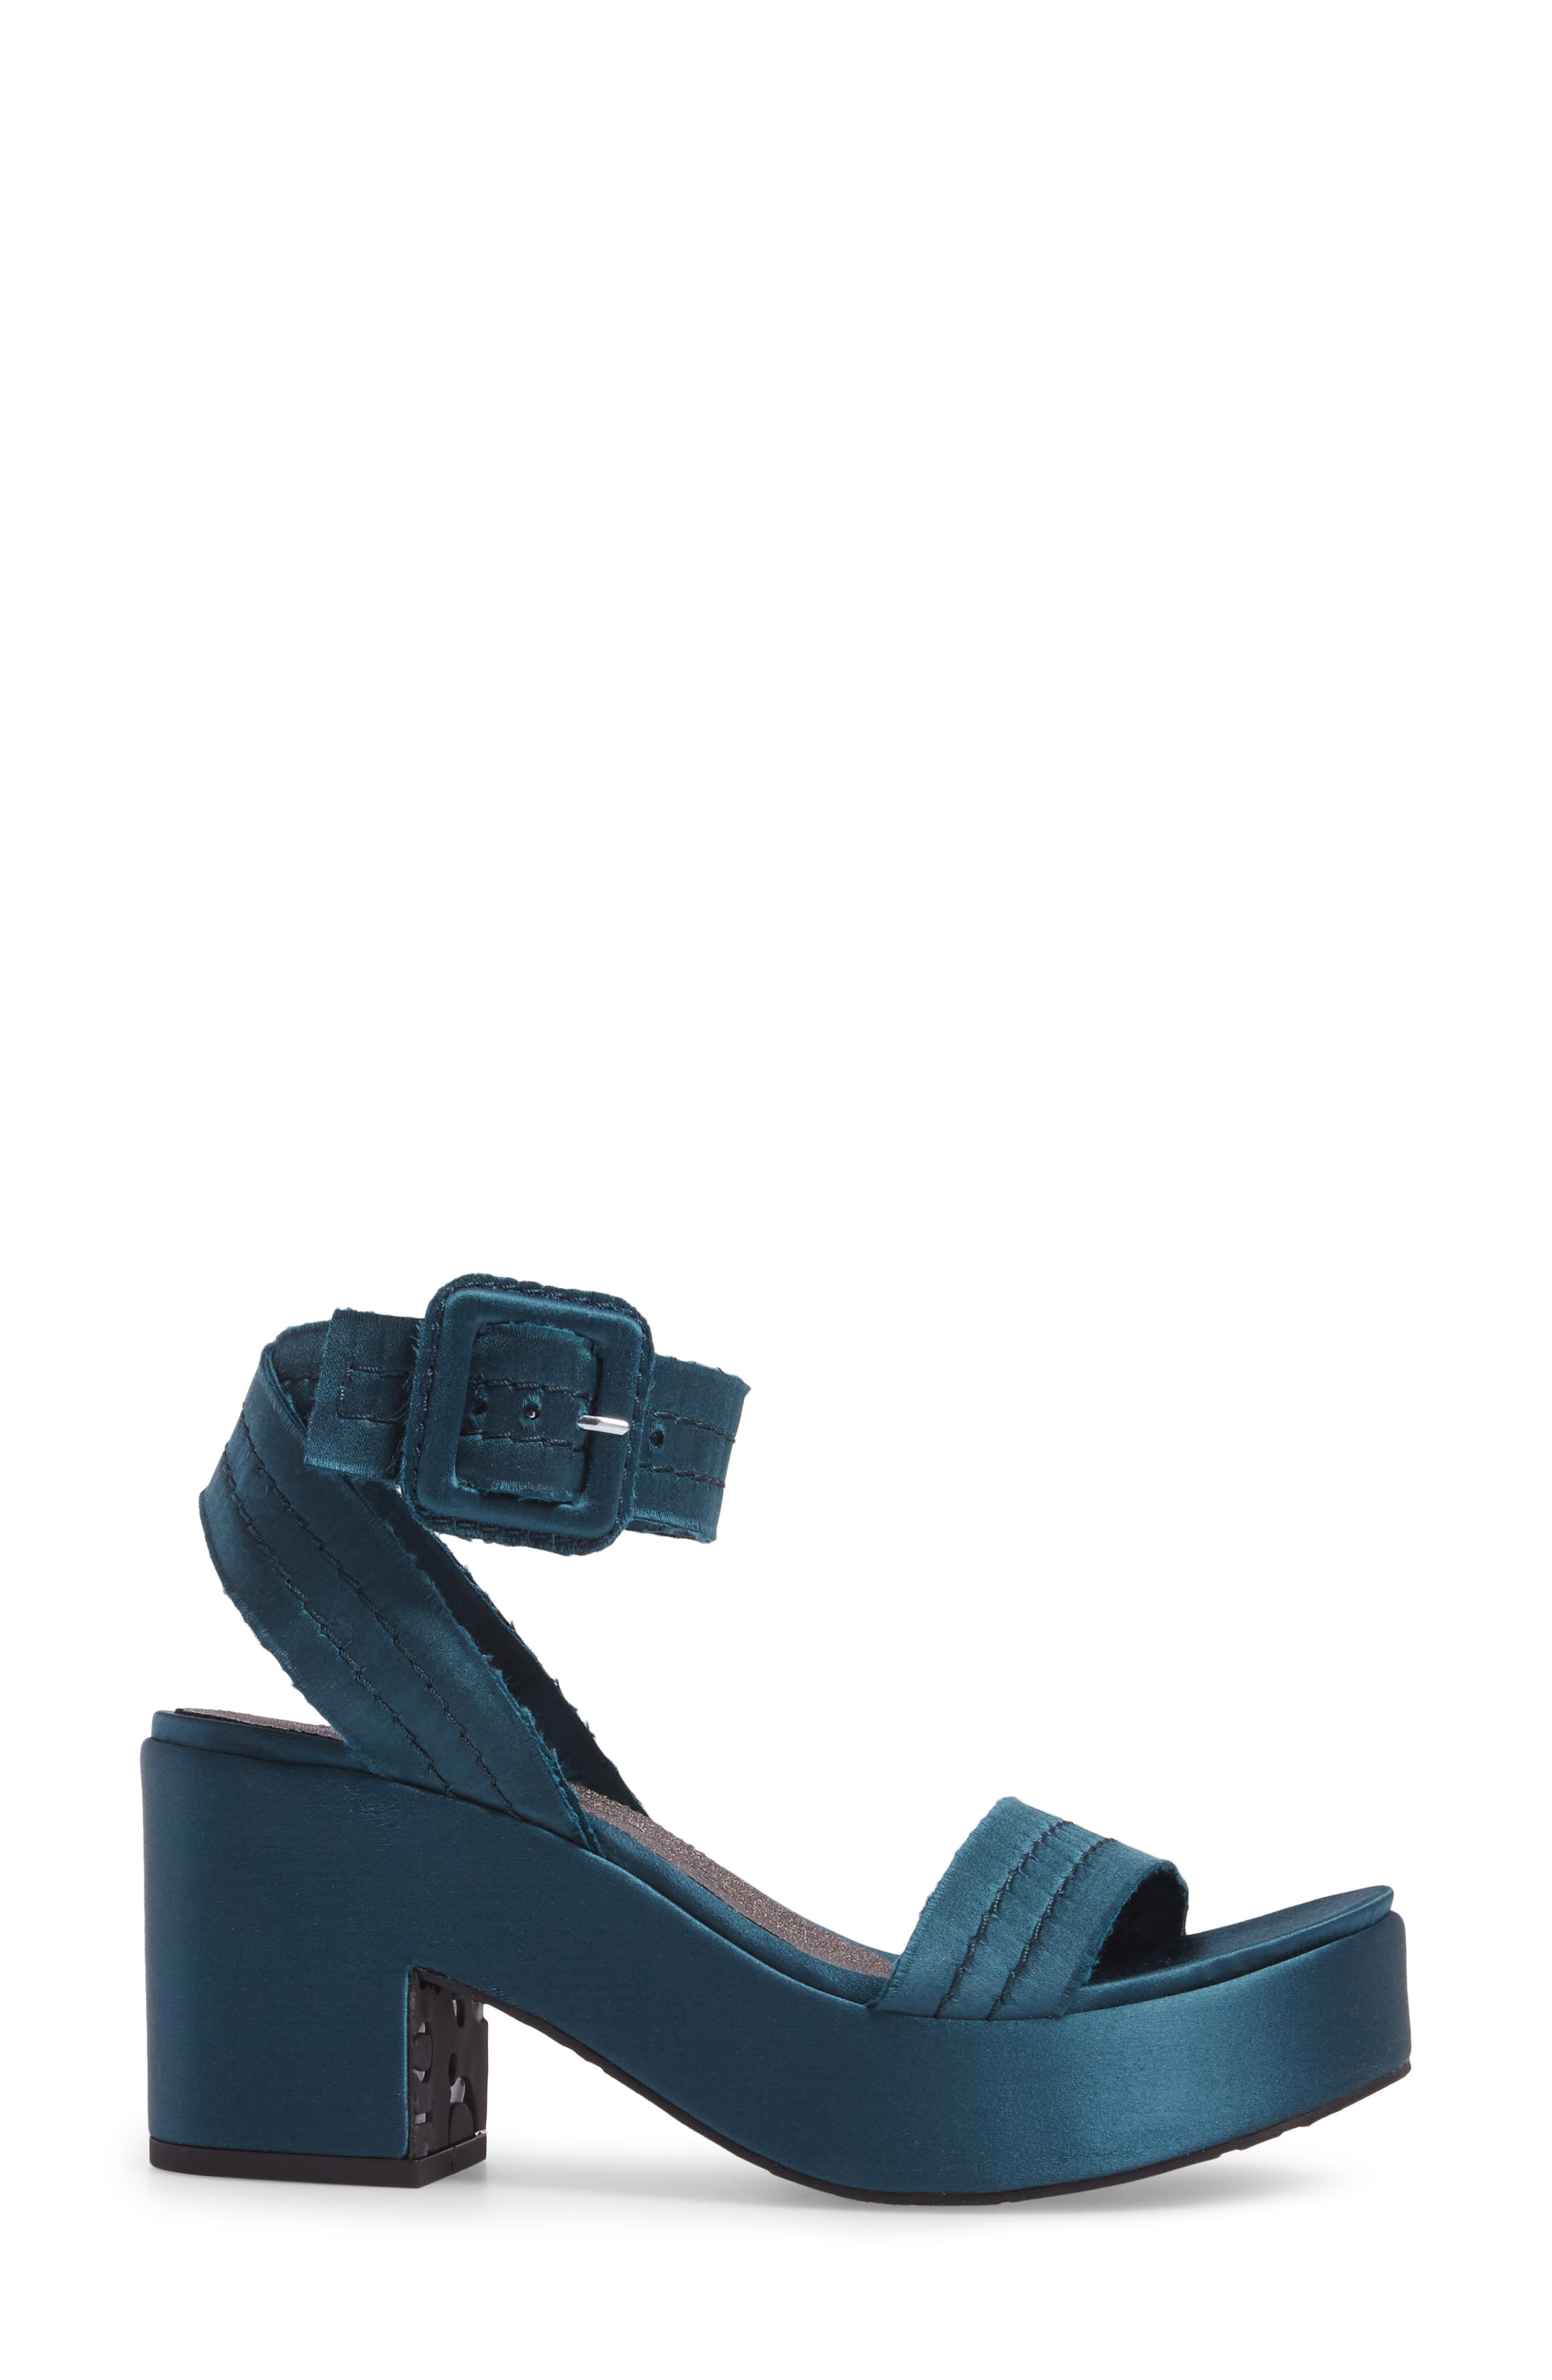 Davida Platform Sandal,                             Alternate thumbnail 3, color,                             400